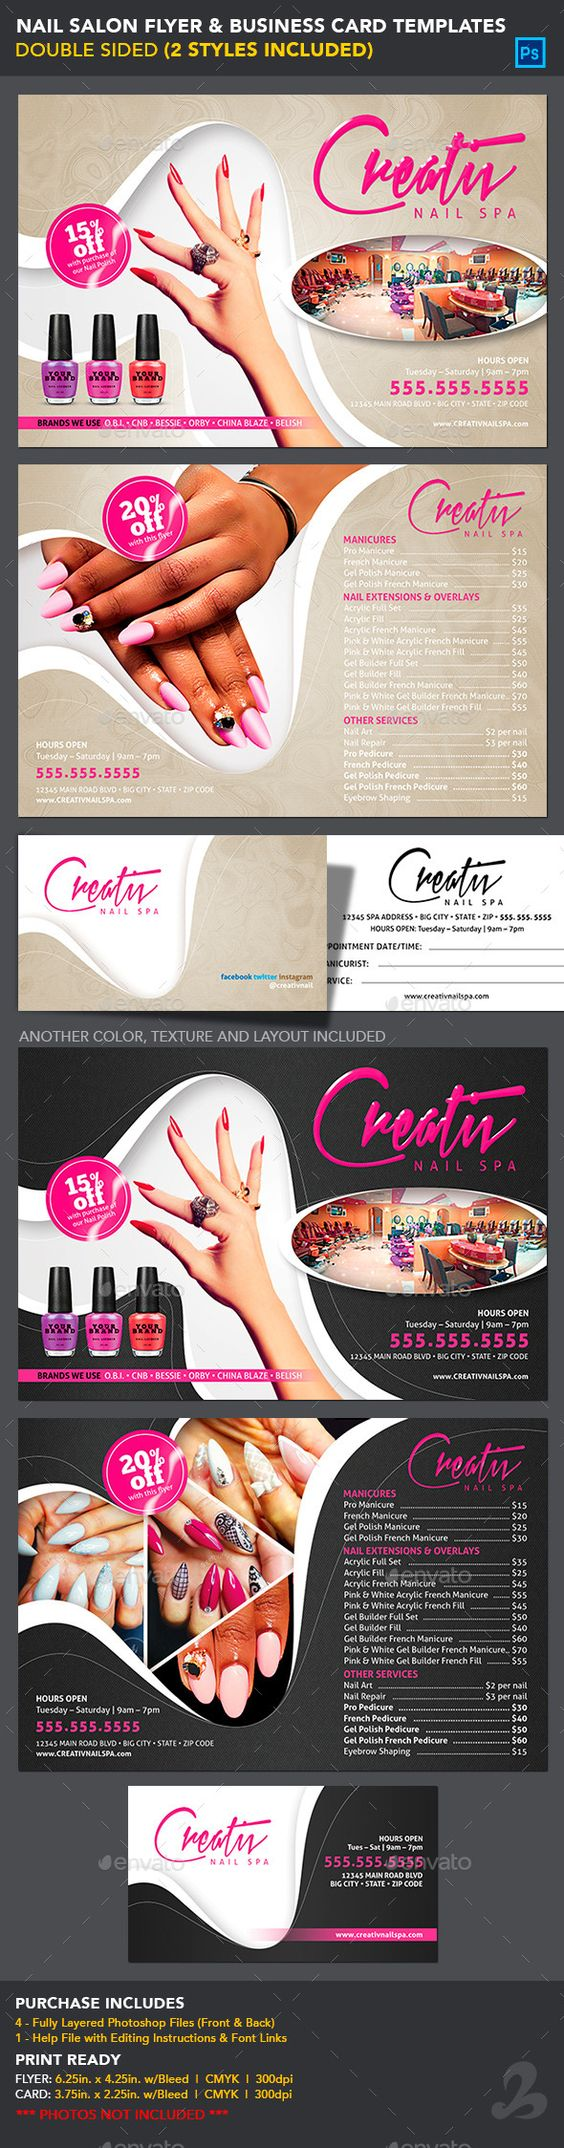 Nail salon brochure templates datariouruguay nail salon flyer template with prices marketing flyers reheart Image collections